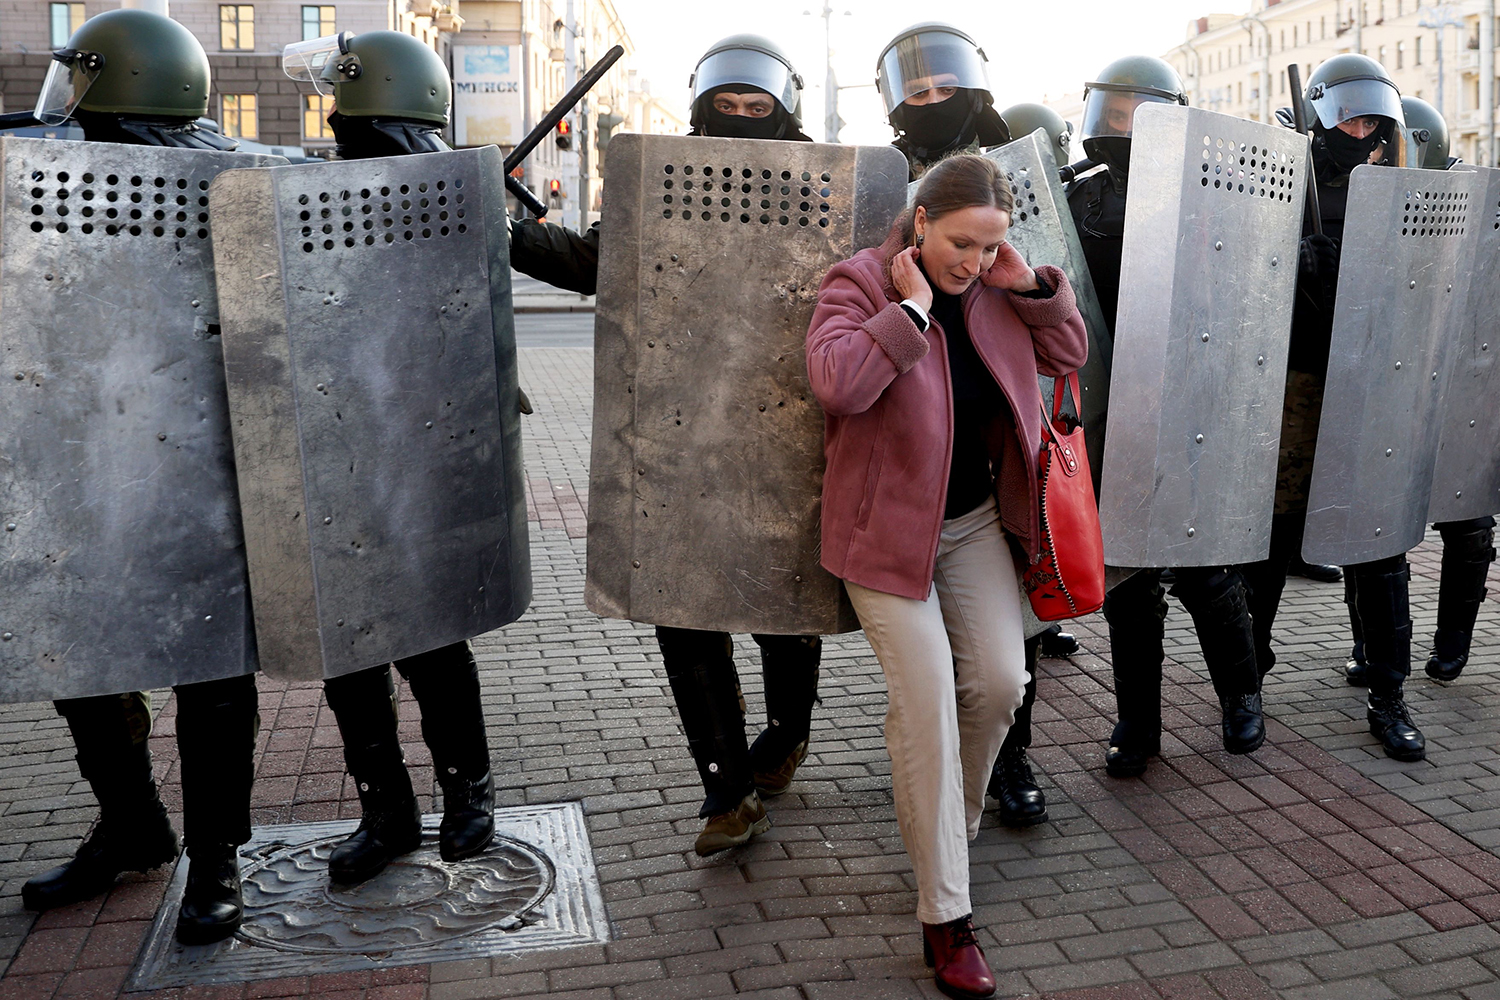 A woman is jostled by a wall of law enforcement officers as they block the road during a demonstration in Minsk on Sept. 20, 2020.